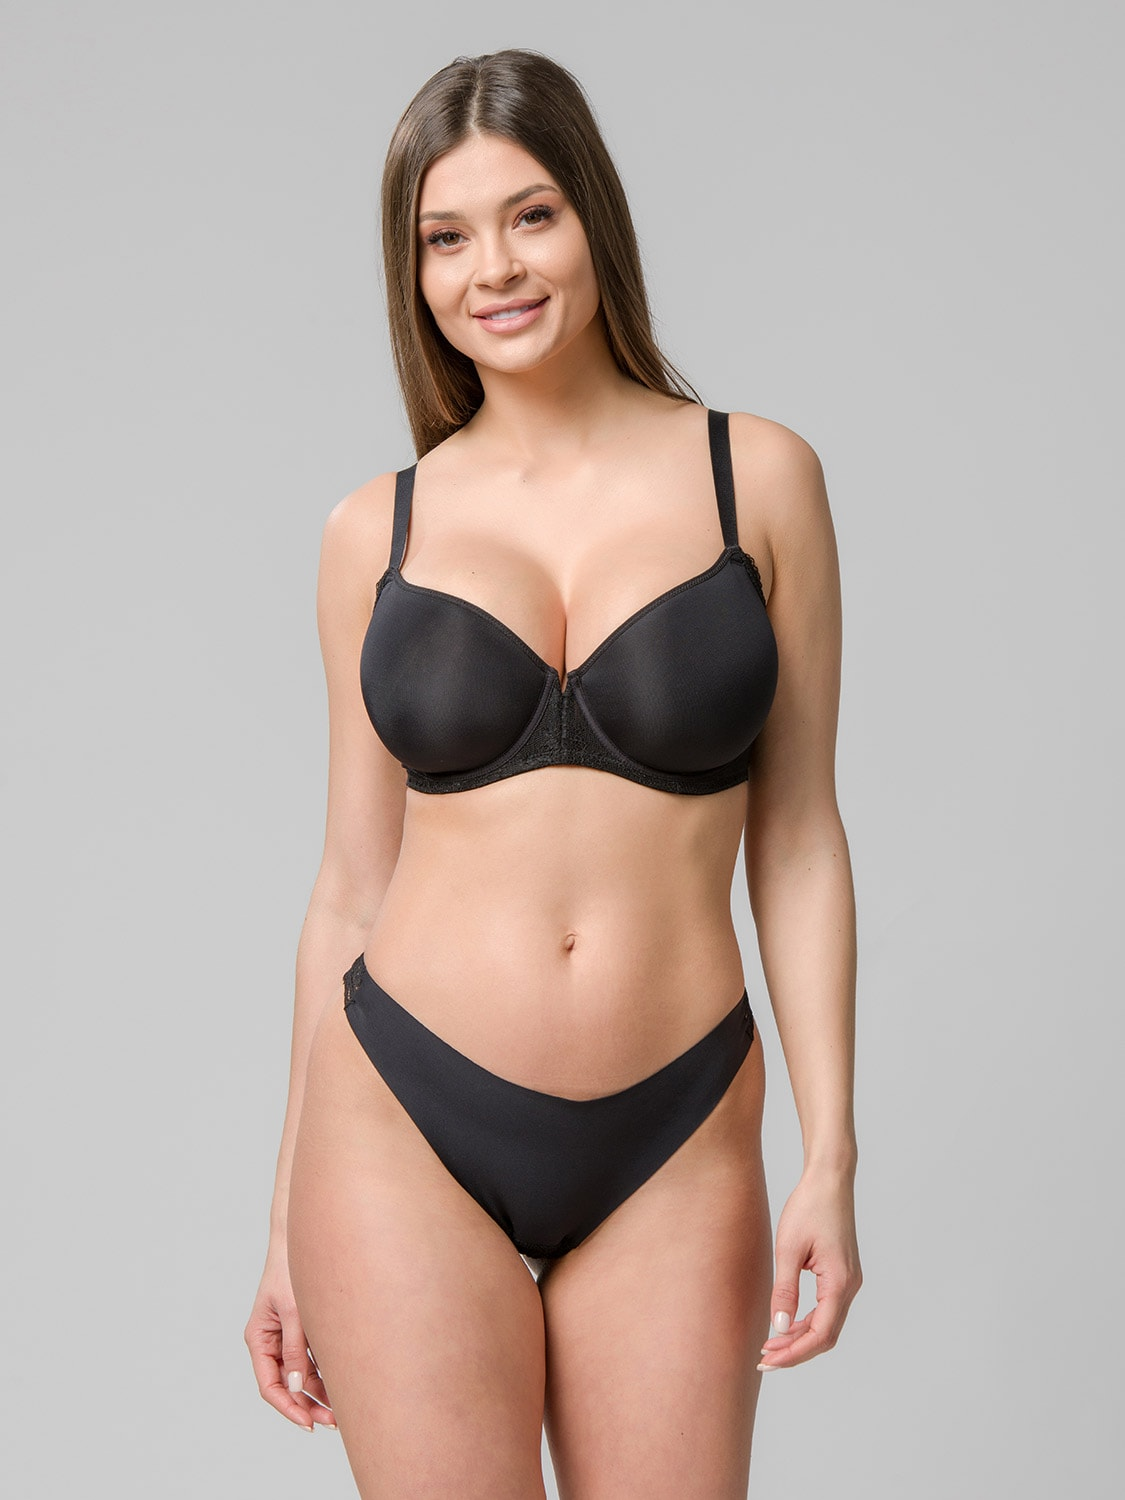 Perfect fit spacer balconette 14103 & brazilian 24102 black front